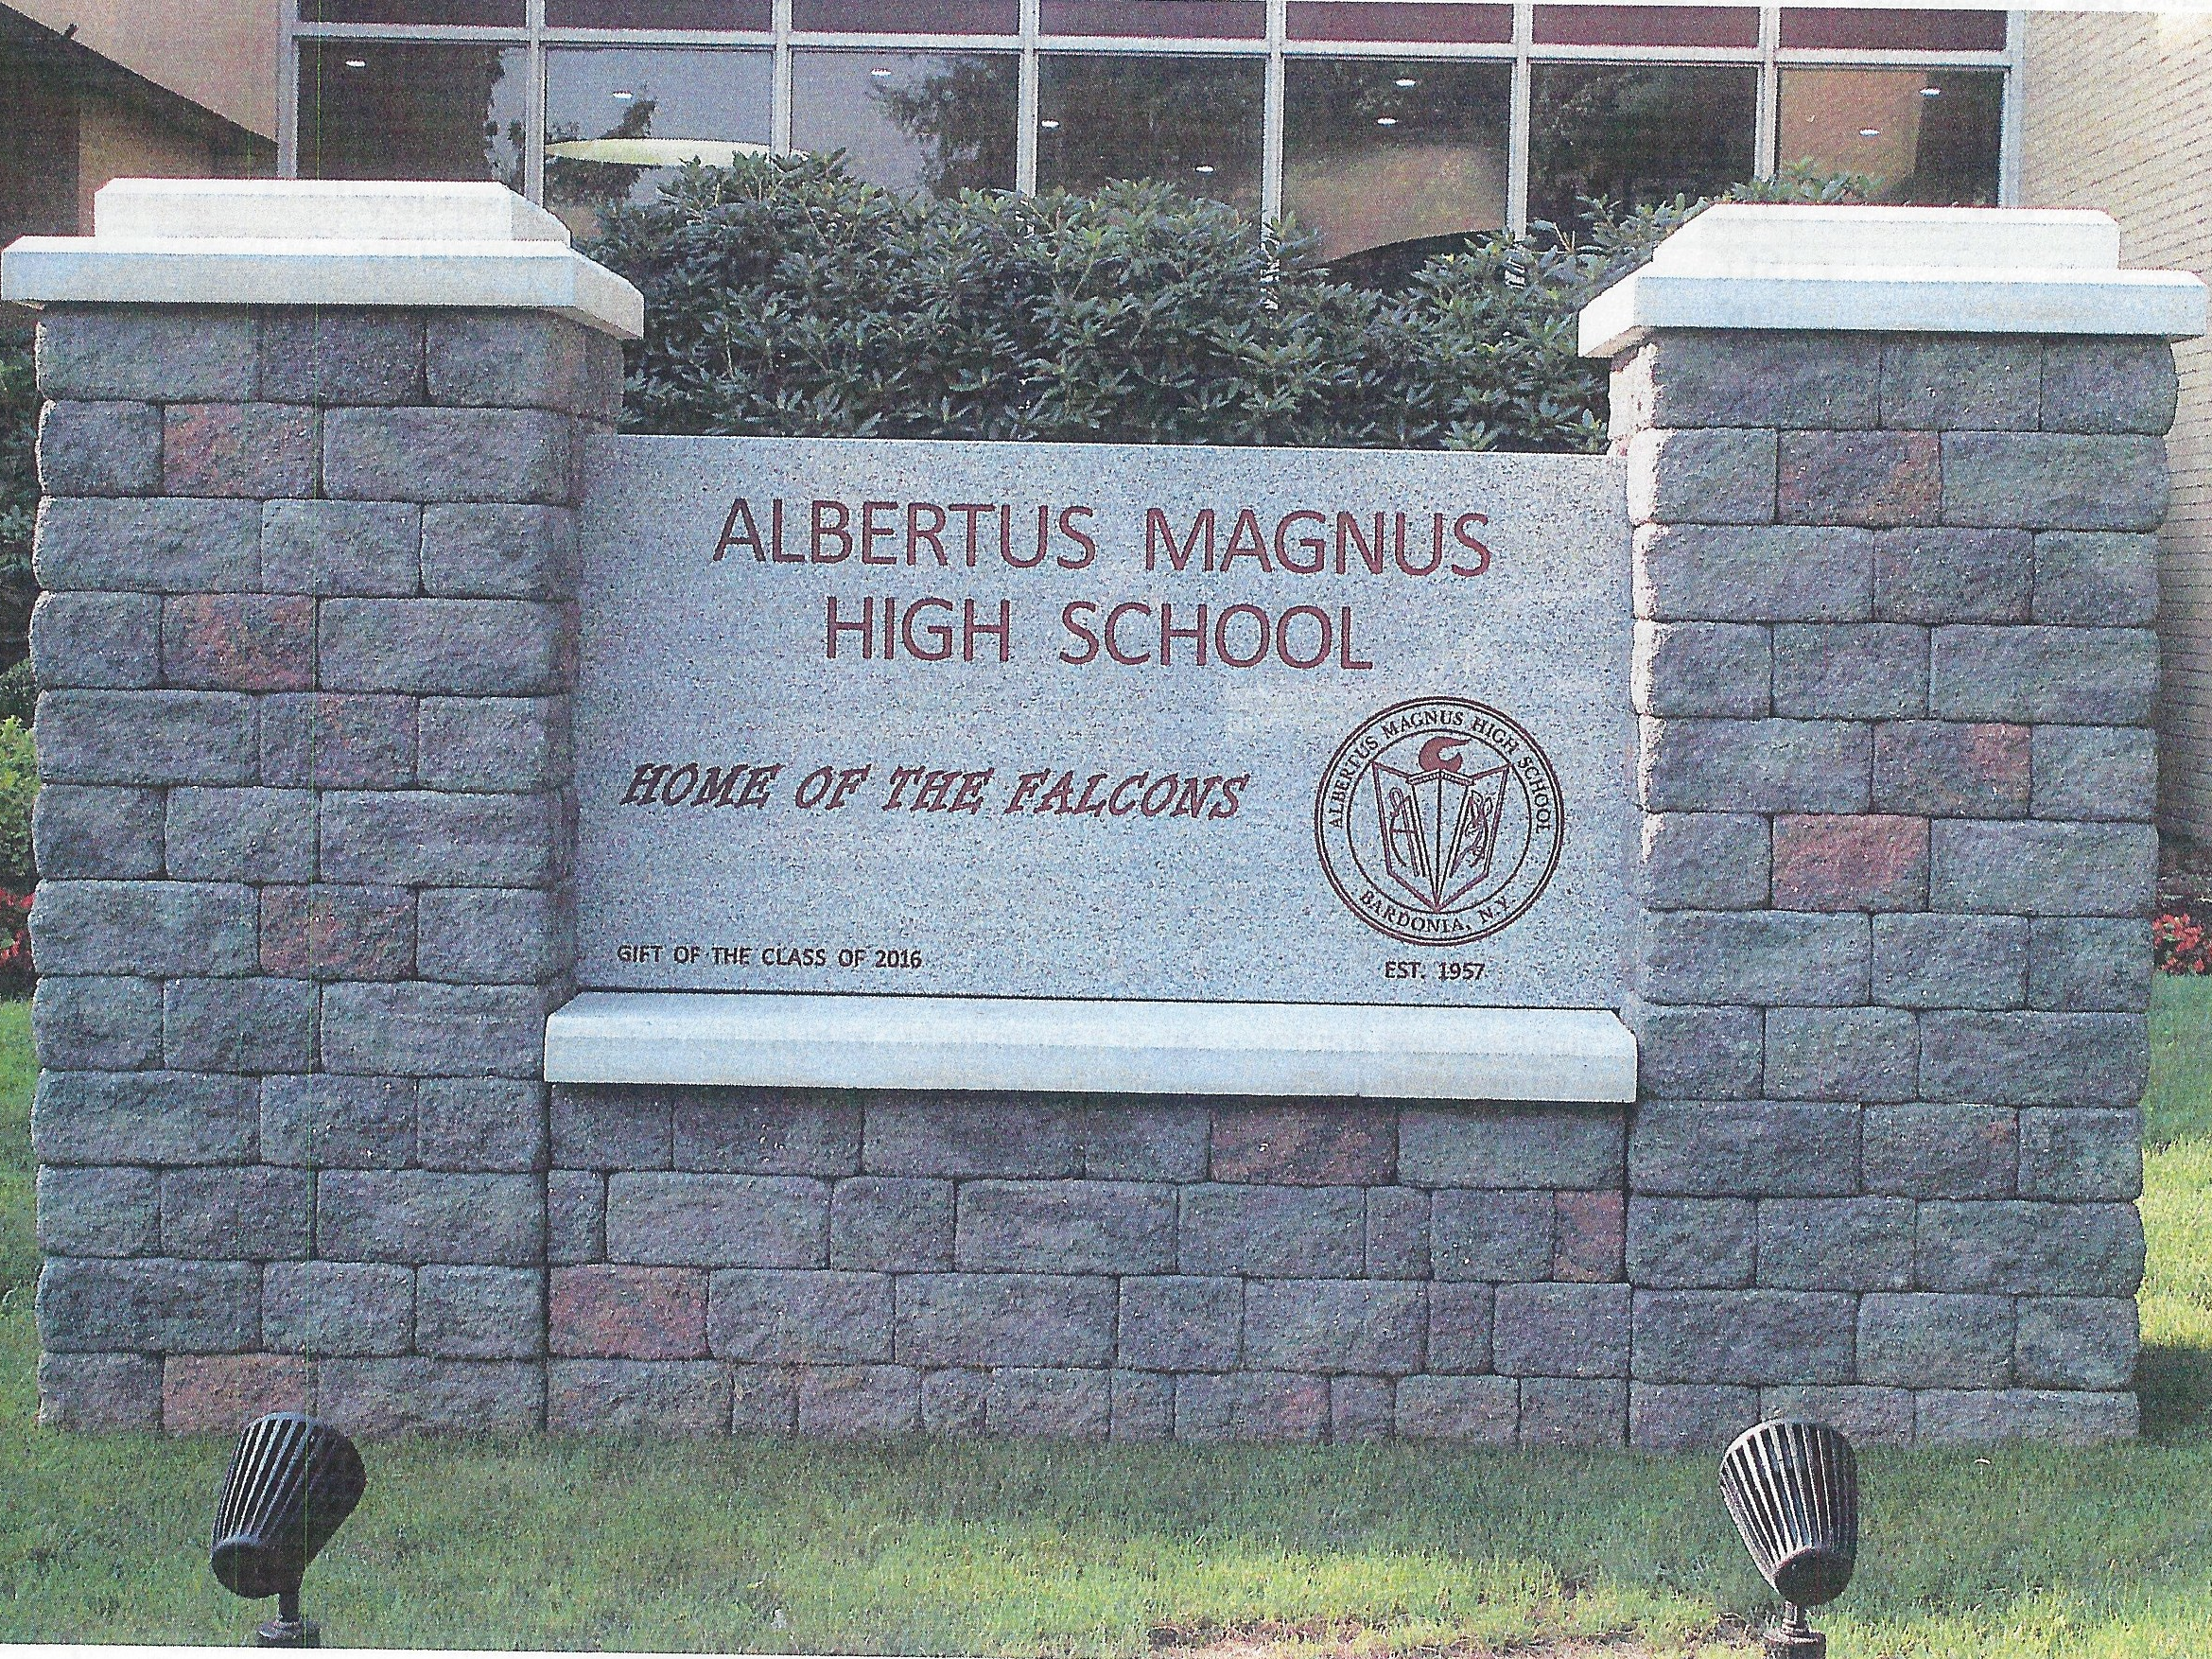 Albertus Magnus High School 2017-18